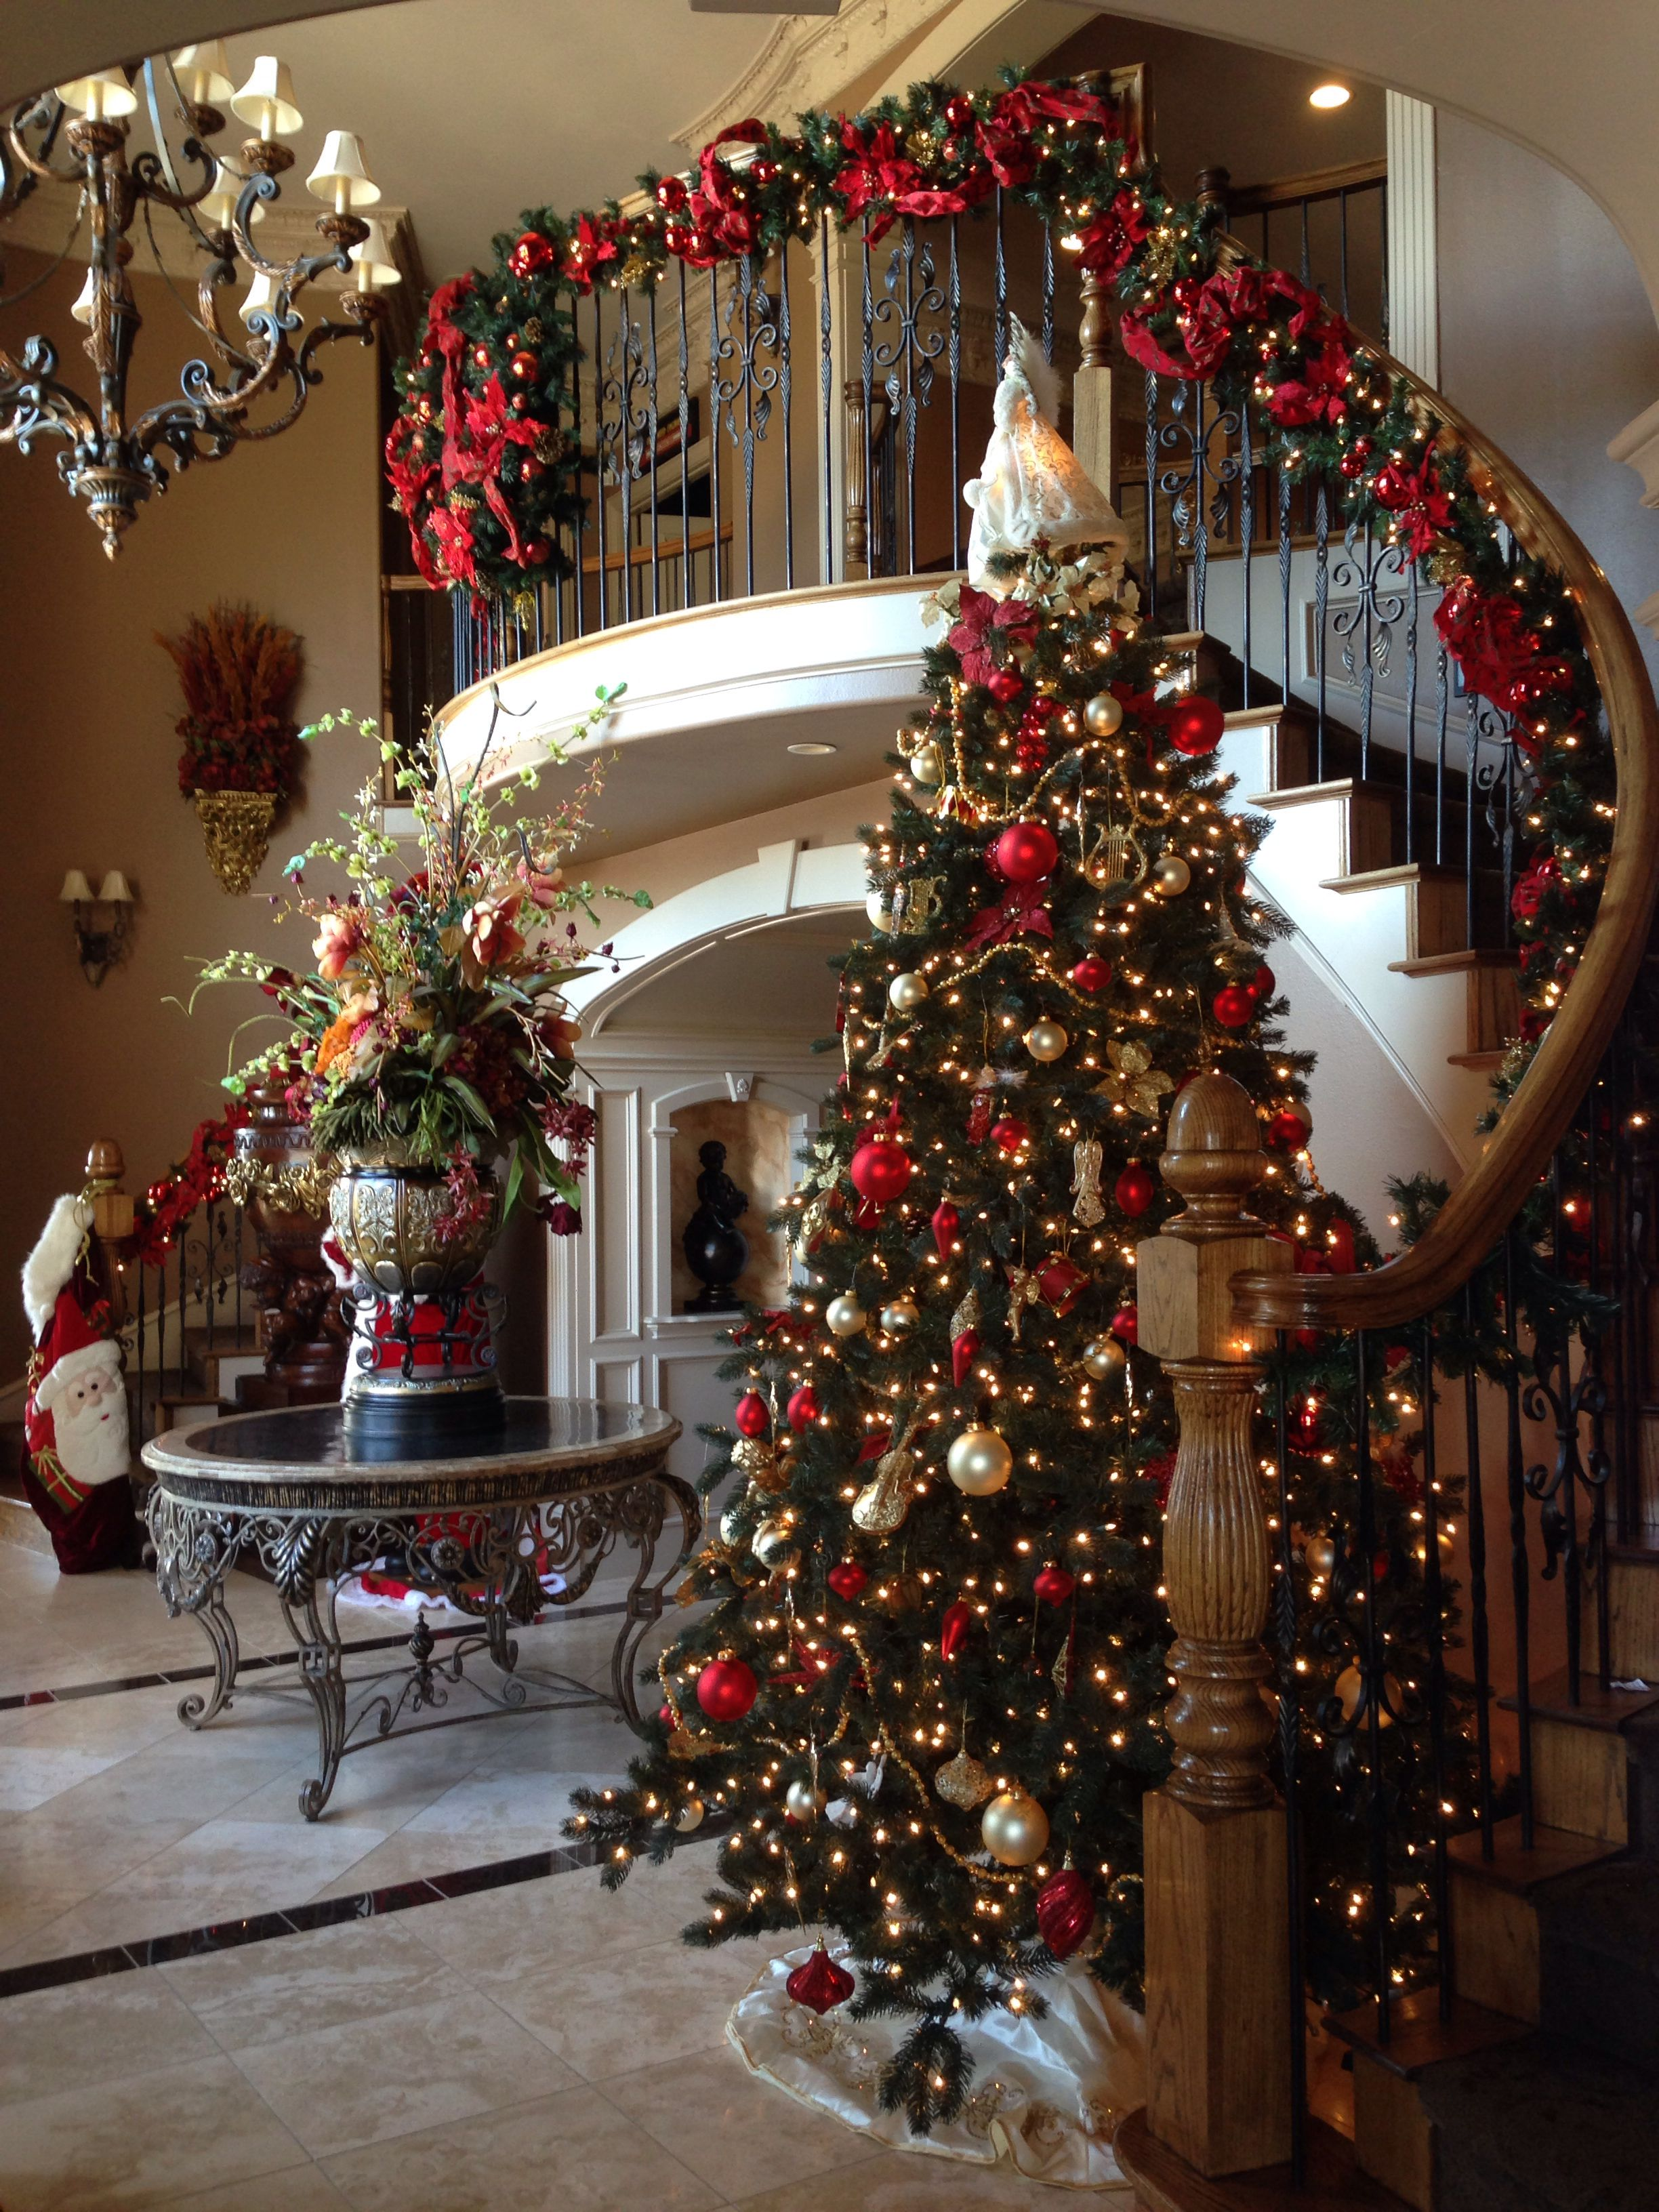 My Foyer Decorated For Christmas Christmas Staircase Indoor Christmas Decorations Christmas Entryway